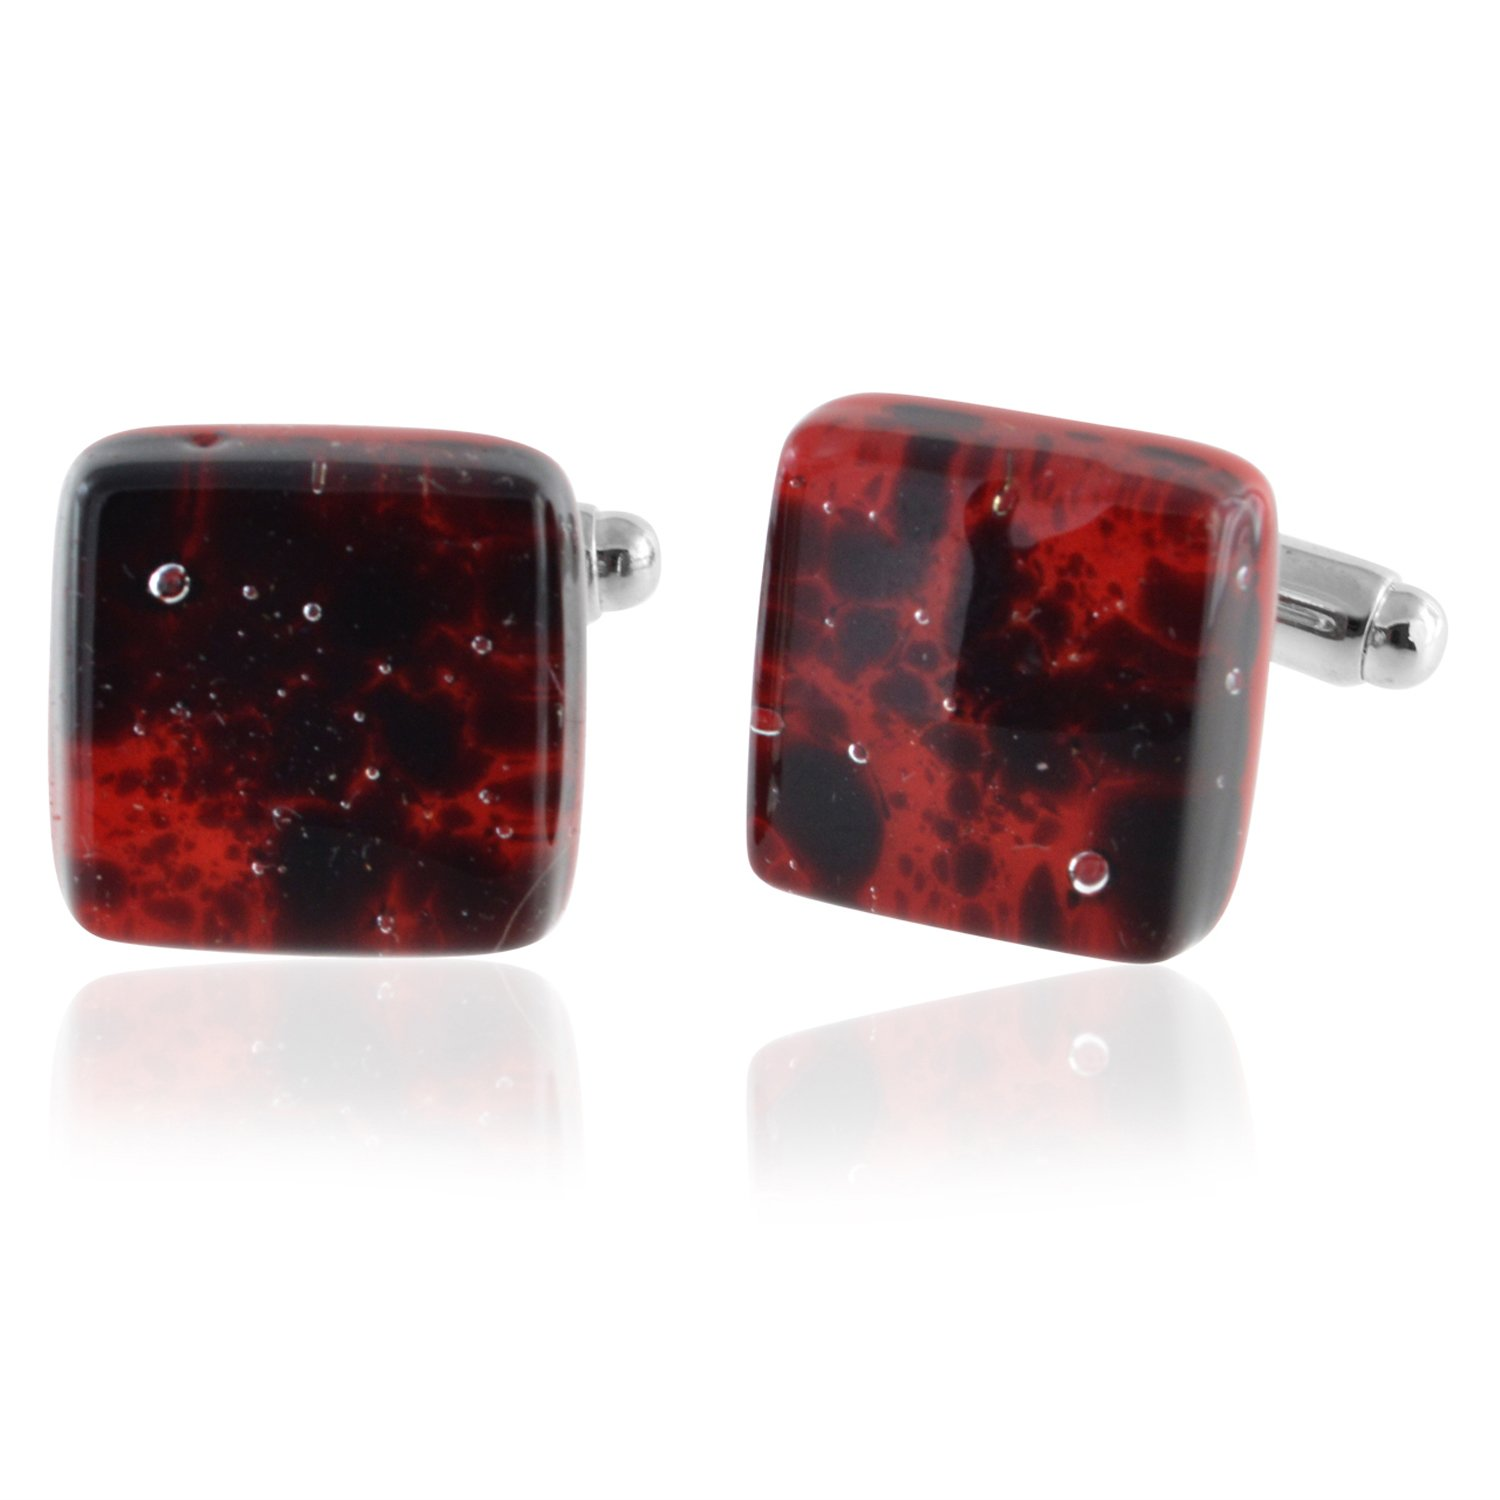 XMI Platinum Fire Red Murano Glass Cufflinks by XMI Platinum